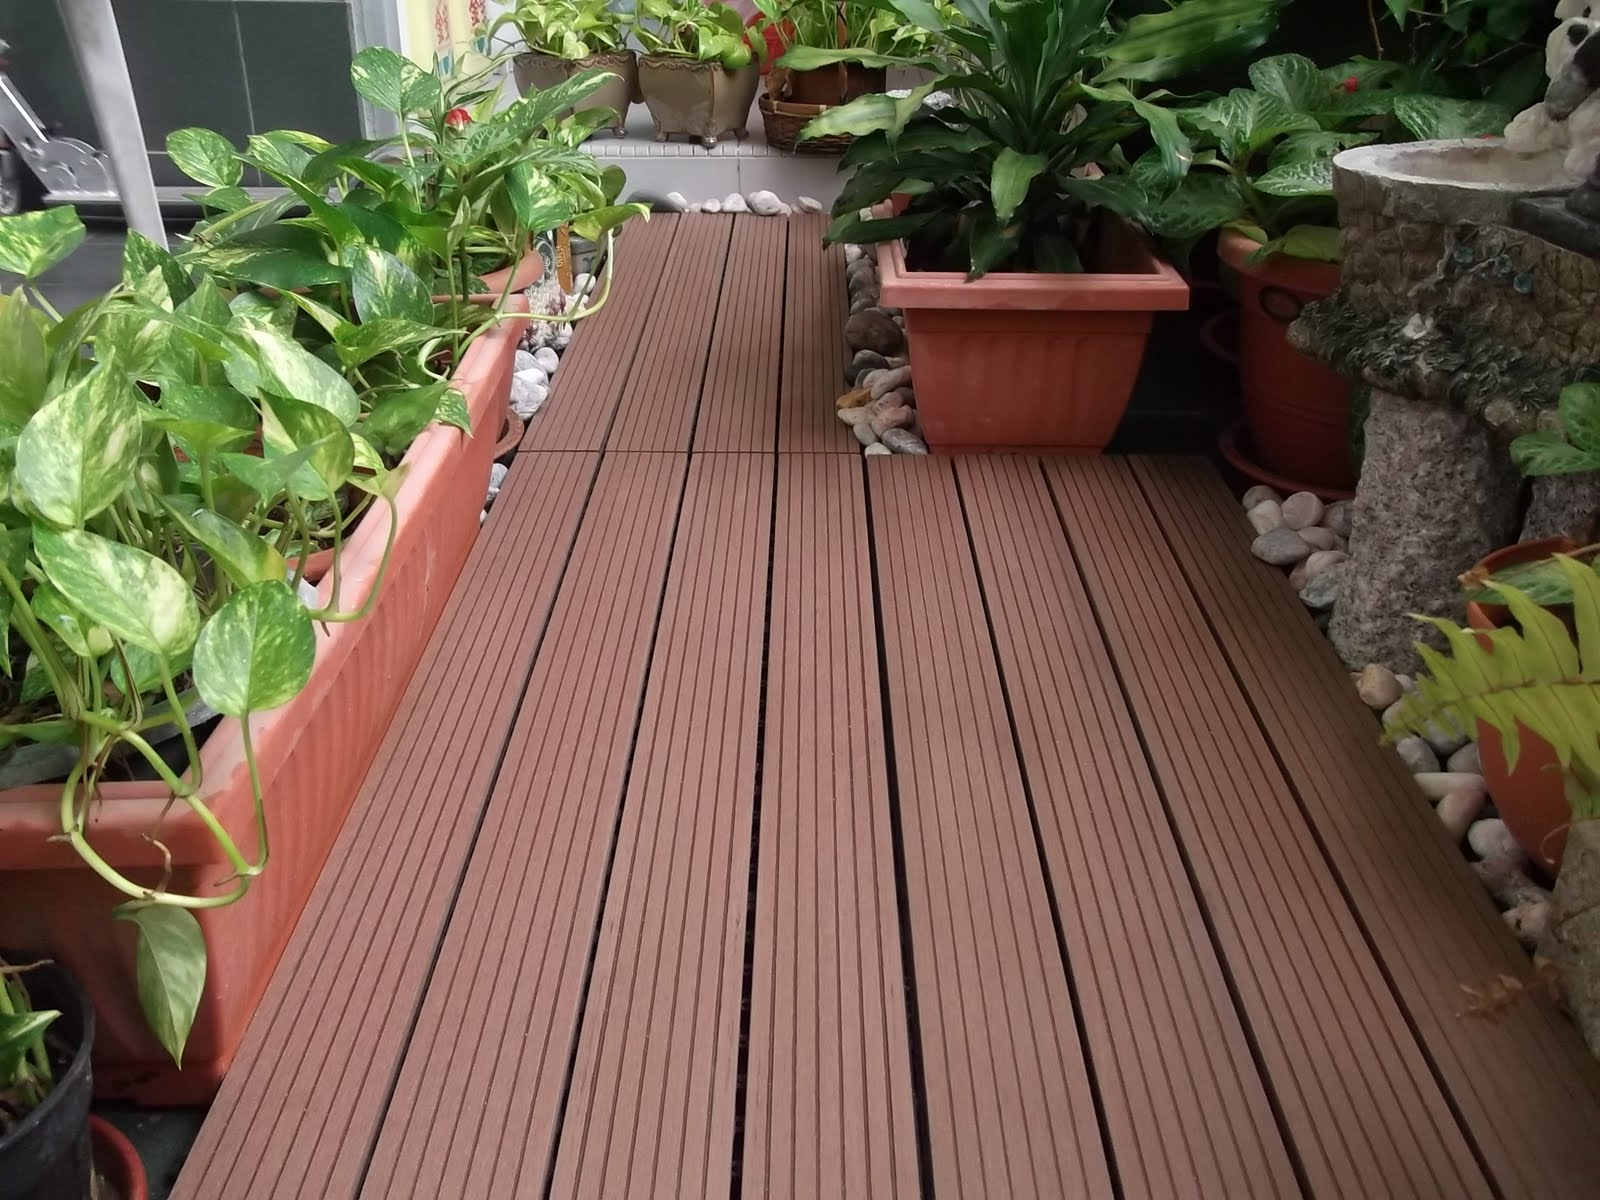 Balkon Bodenbelag Wpc Singapore's Leading Supplier Of Outdoor Decking Flooring